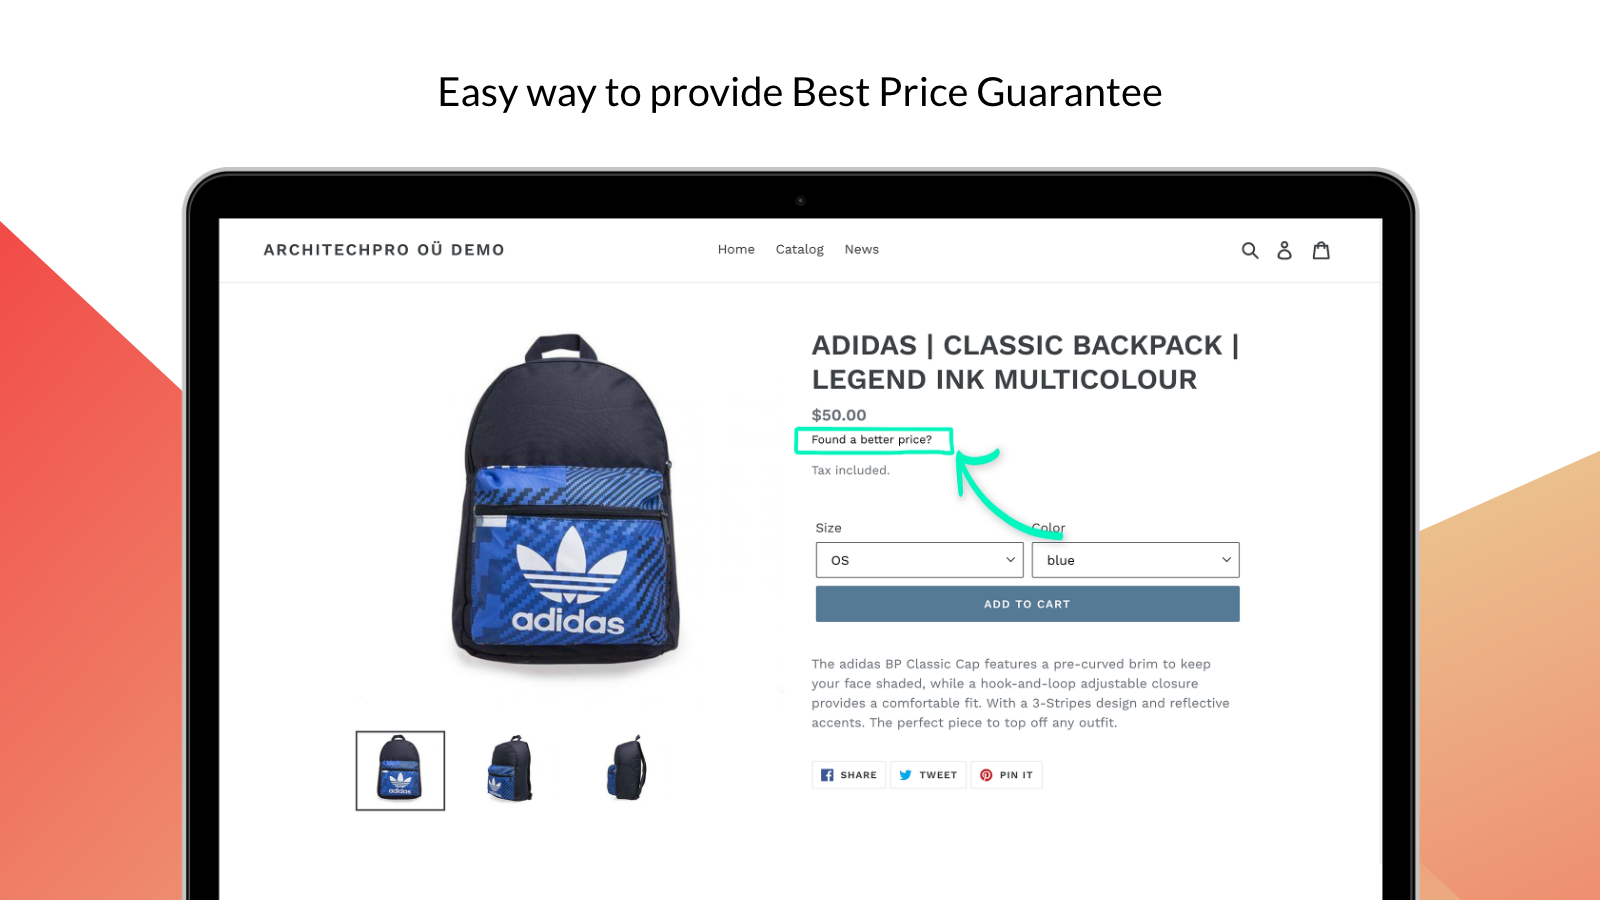 Best Price Guarantee link (button)